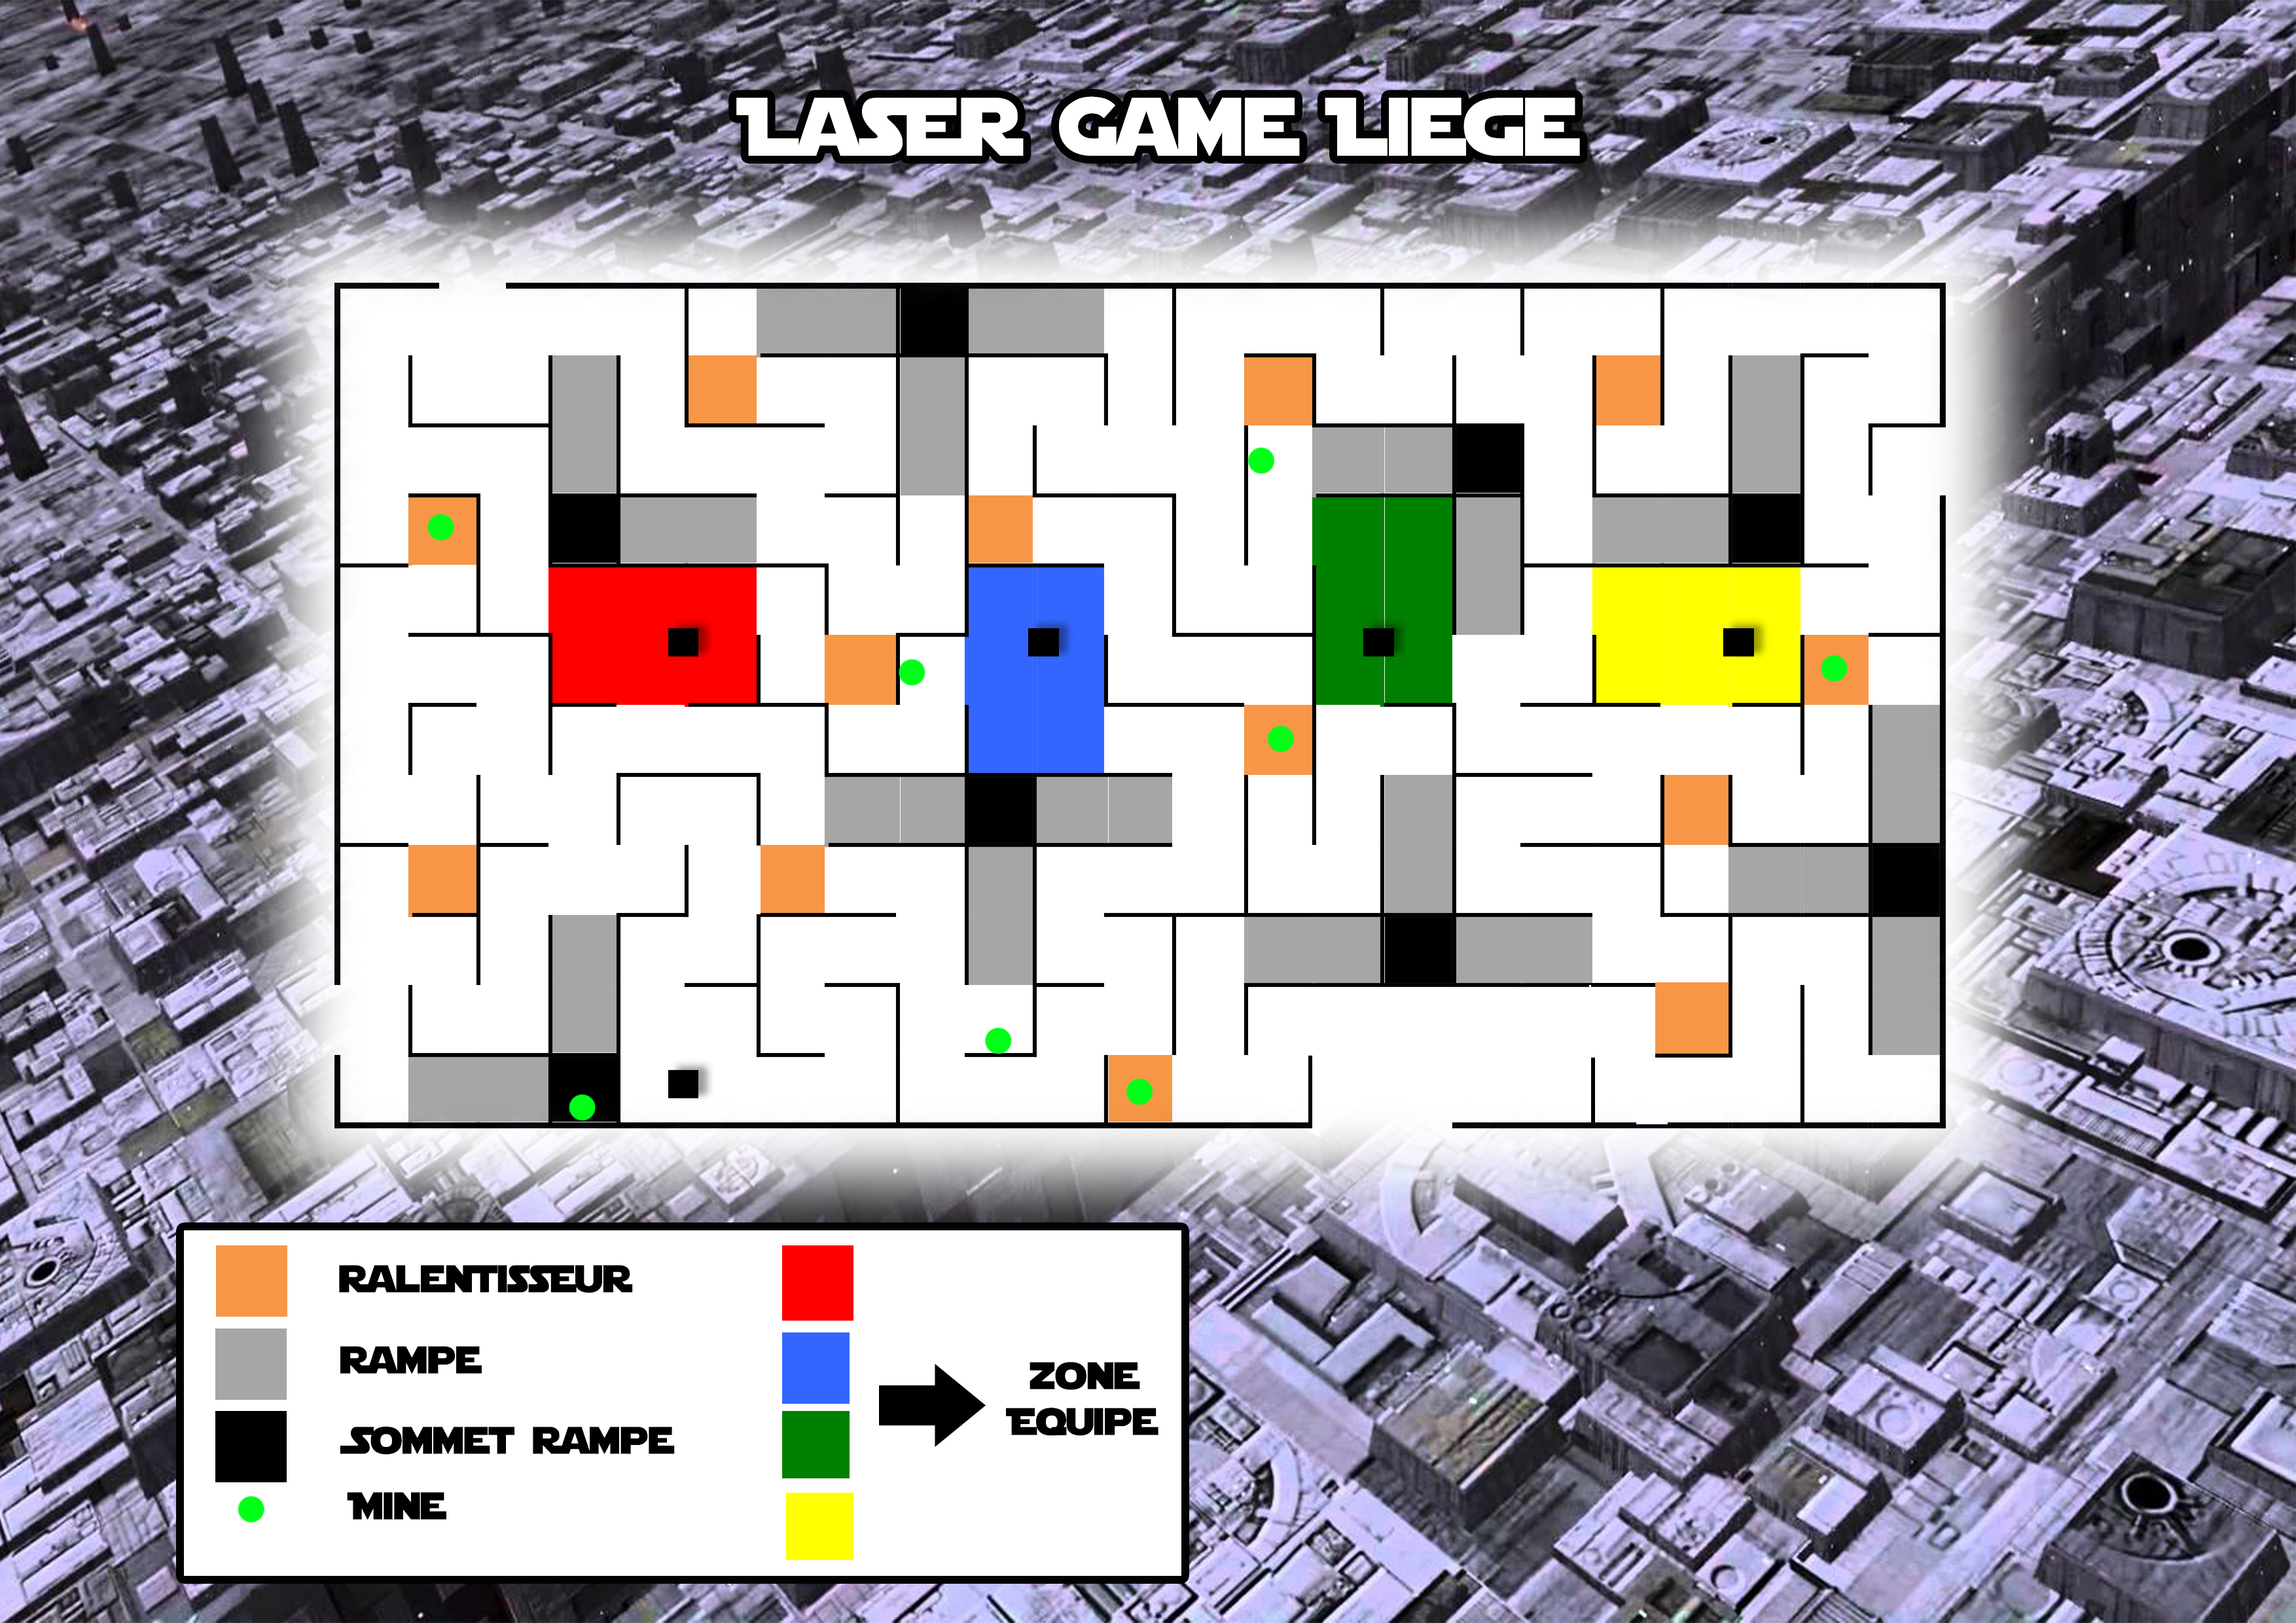 Plan Laser Game Liege